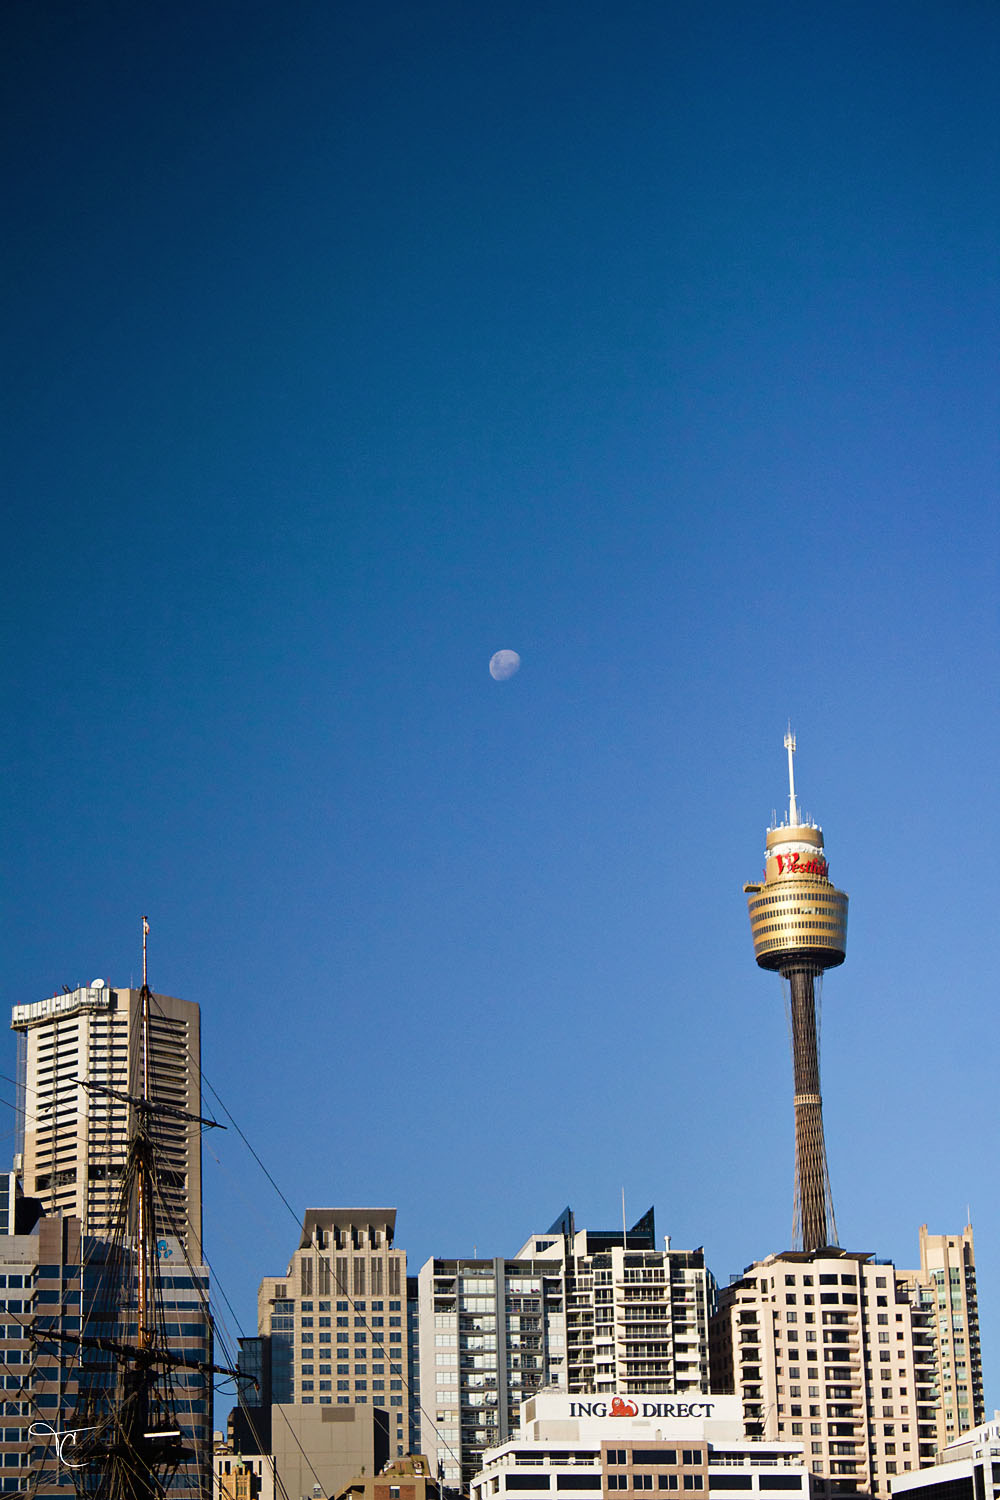 Moon over Sydney skyline